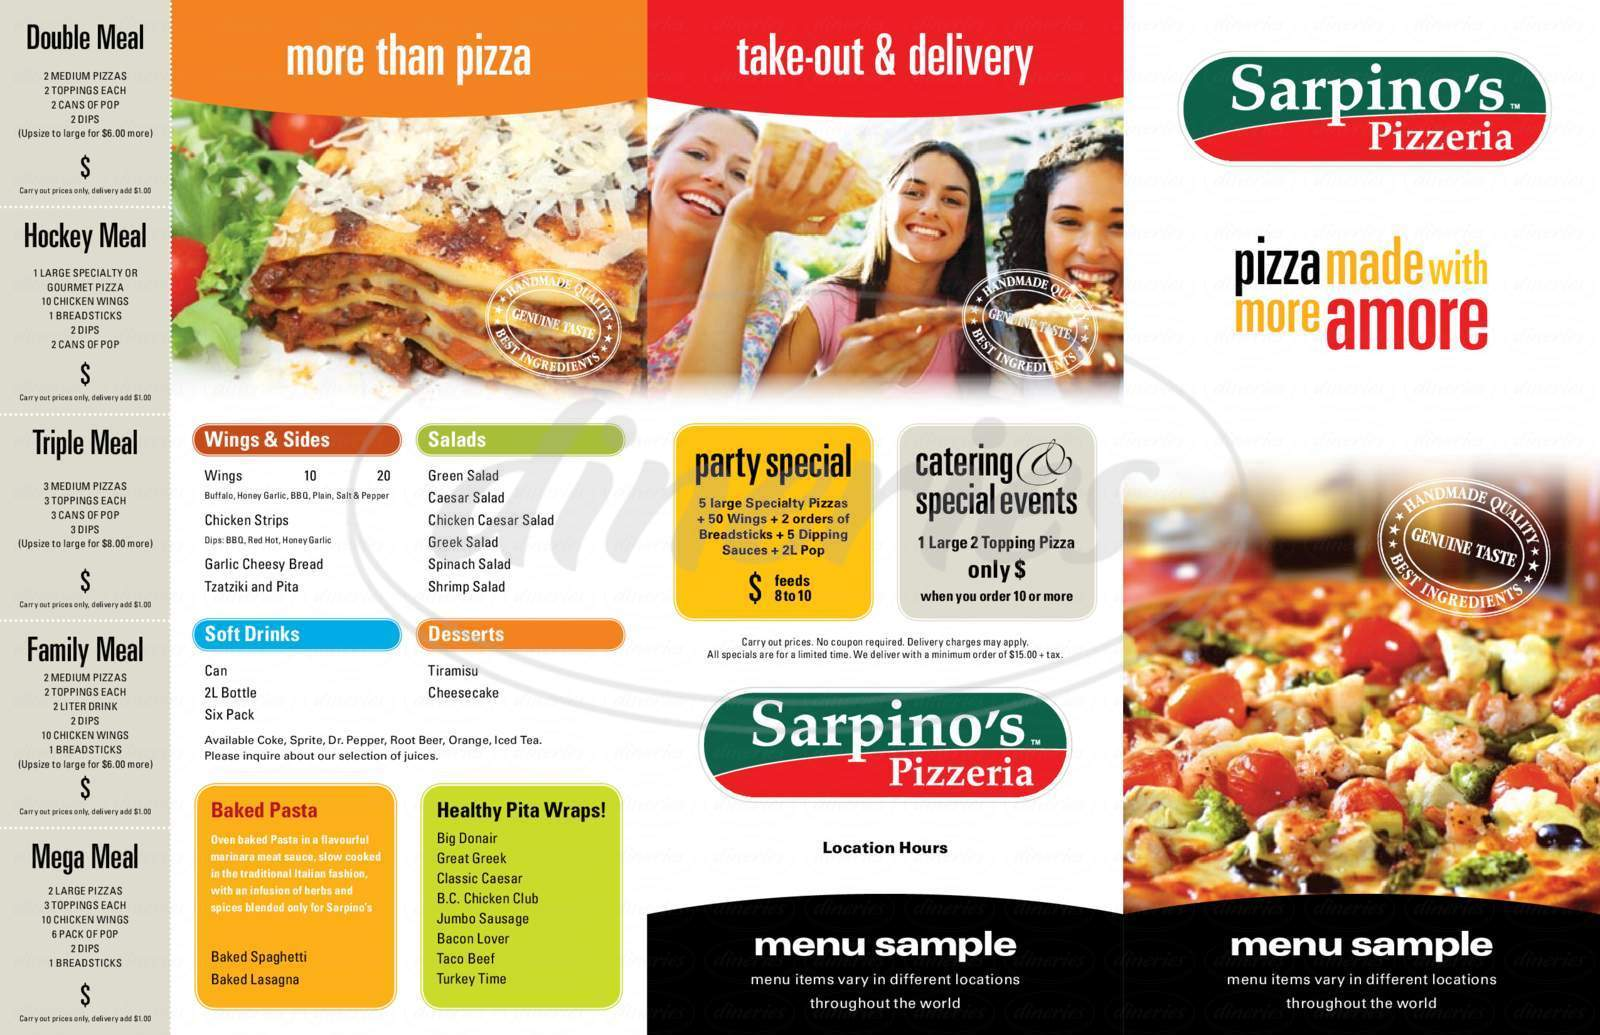 menu for Sarpino's Pizzeria